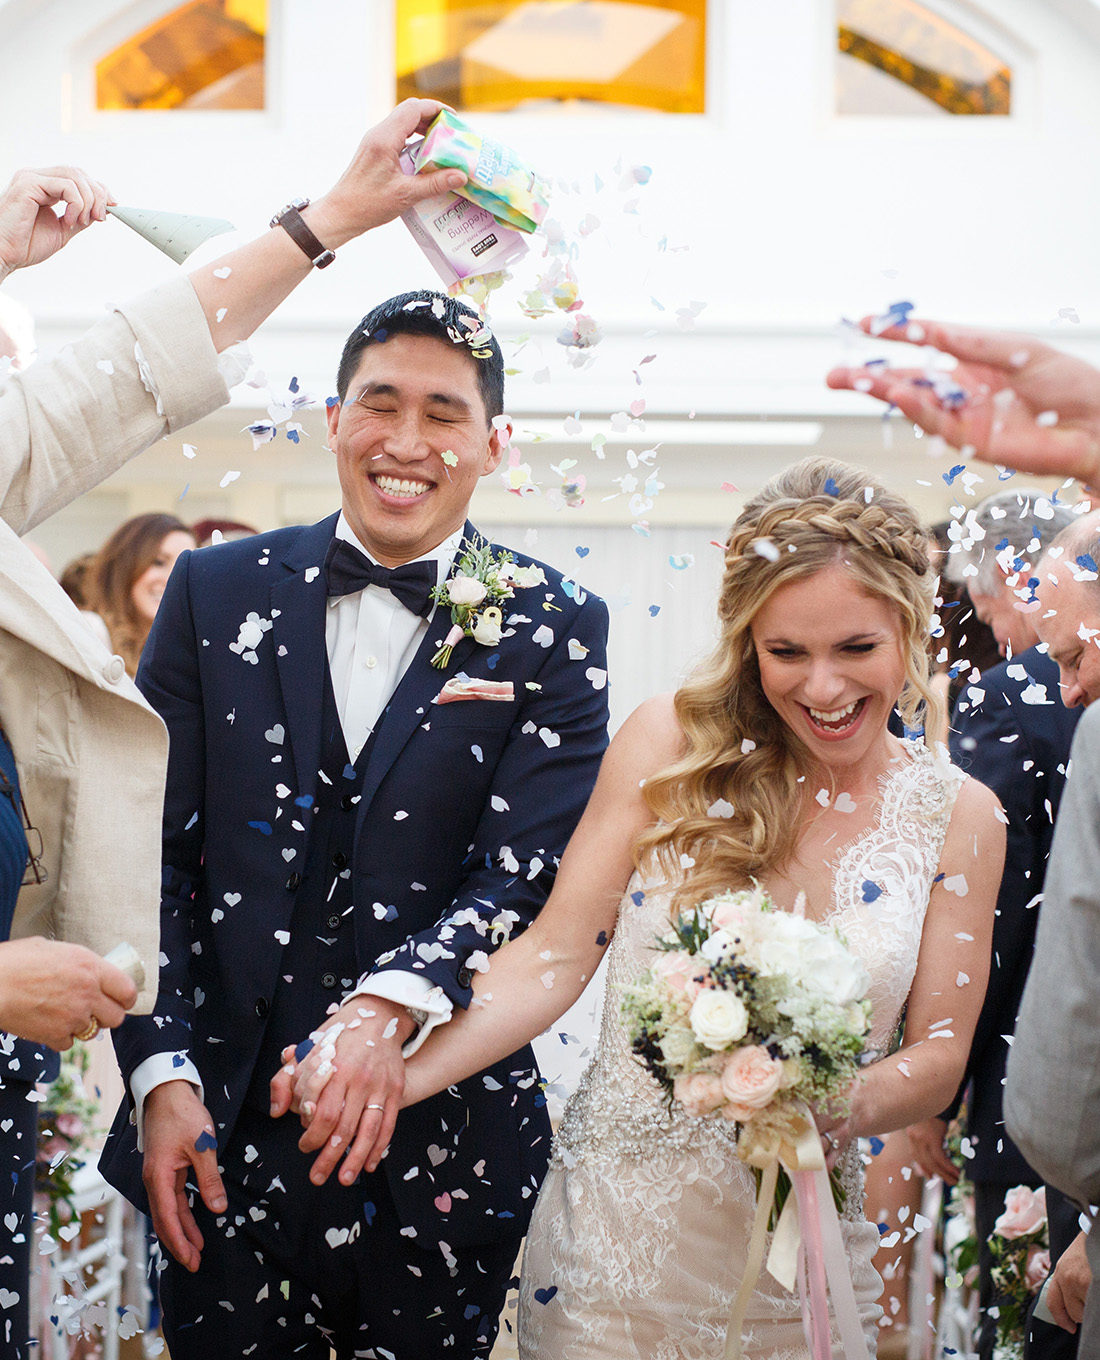 bride and groom running through confetti